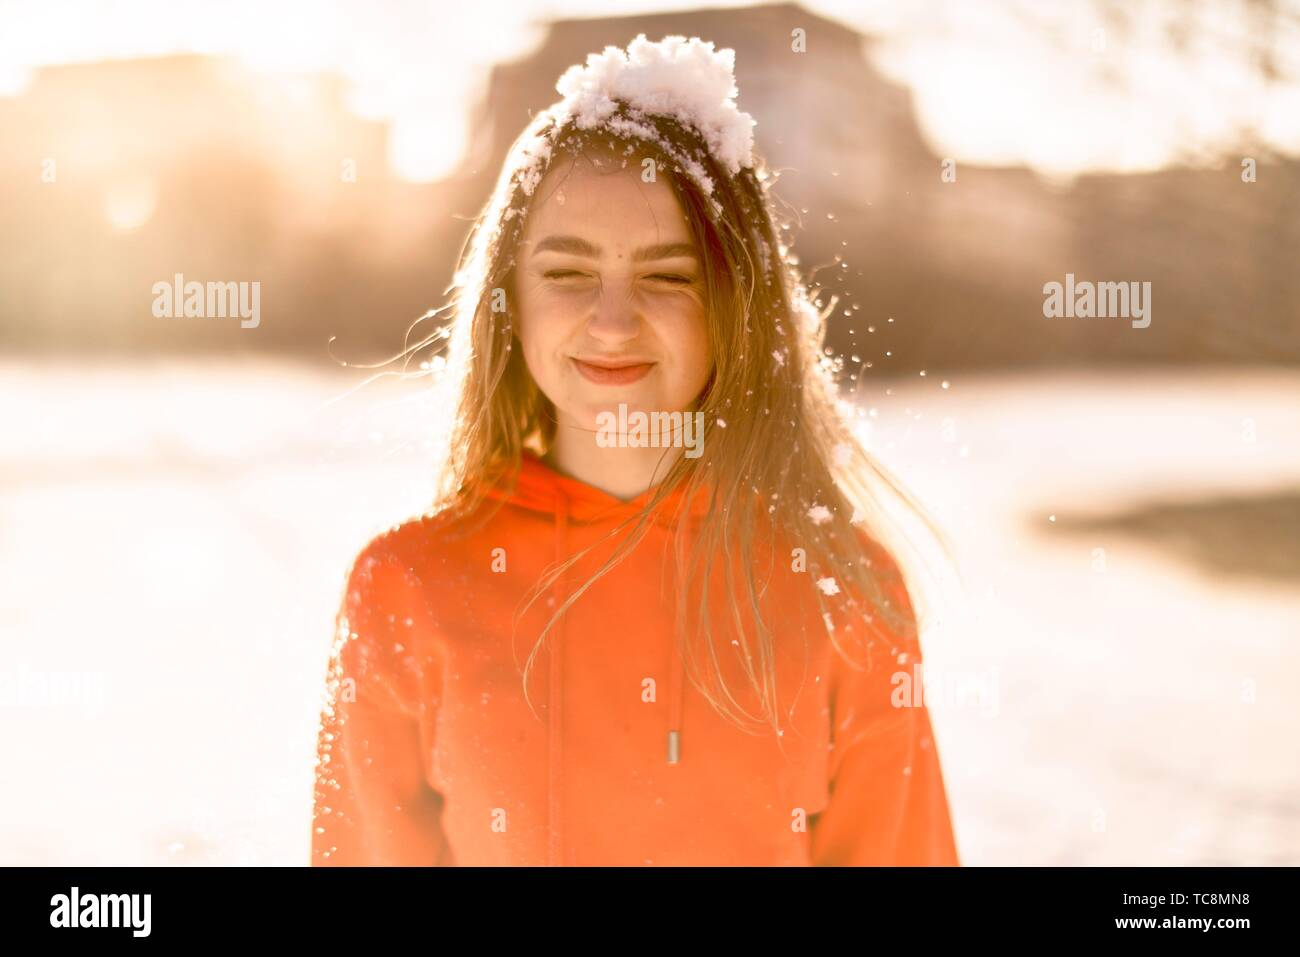 young woman with cold snow on head, squeezing eyes, winter season, wearing orange sweater, in Cottbus, Brandenburg, Germany Stock Photo